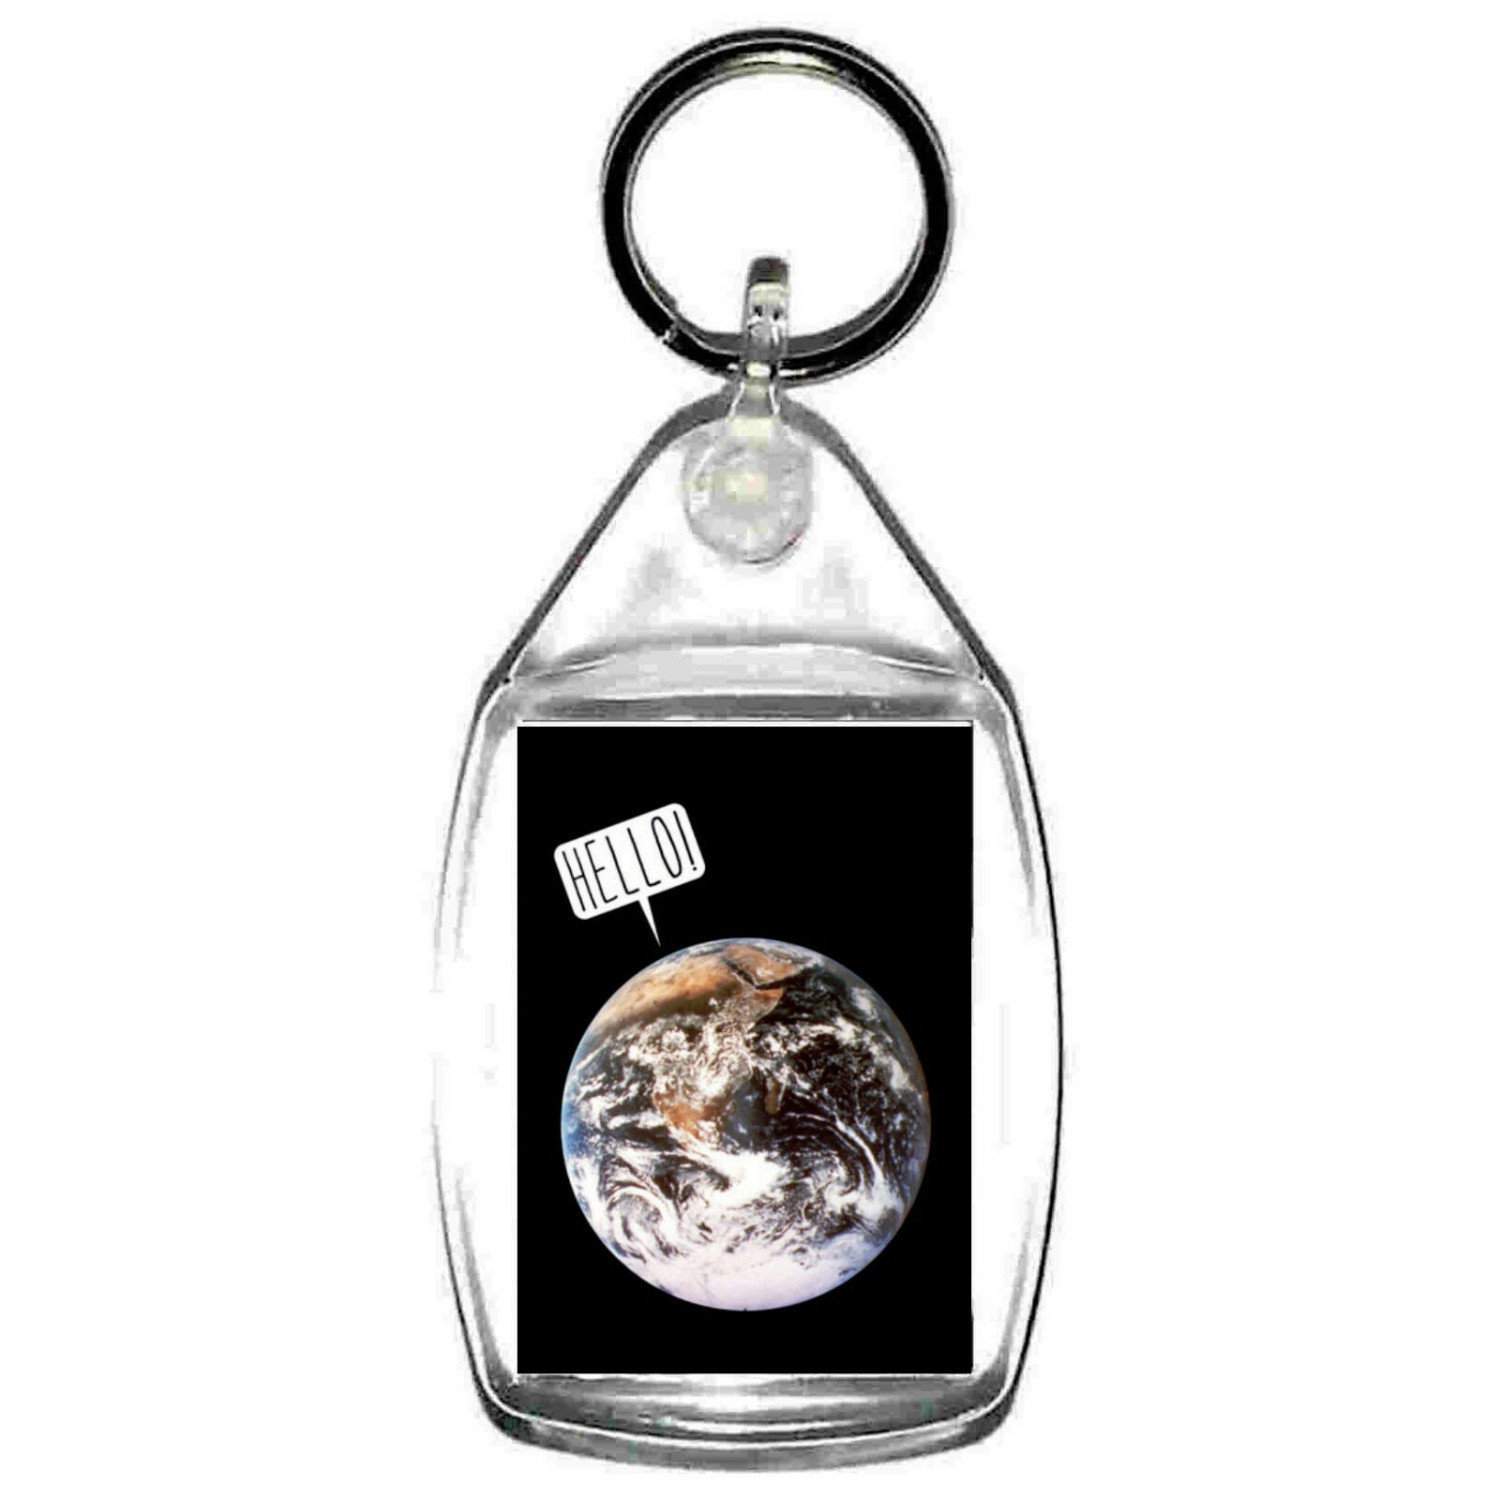 keyring double sided hello world , keychain, keychain, key ring, made in uk